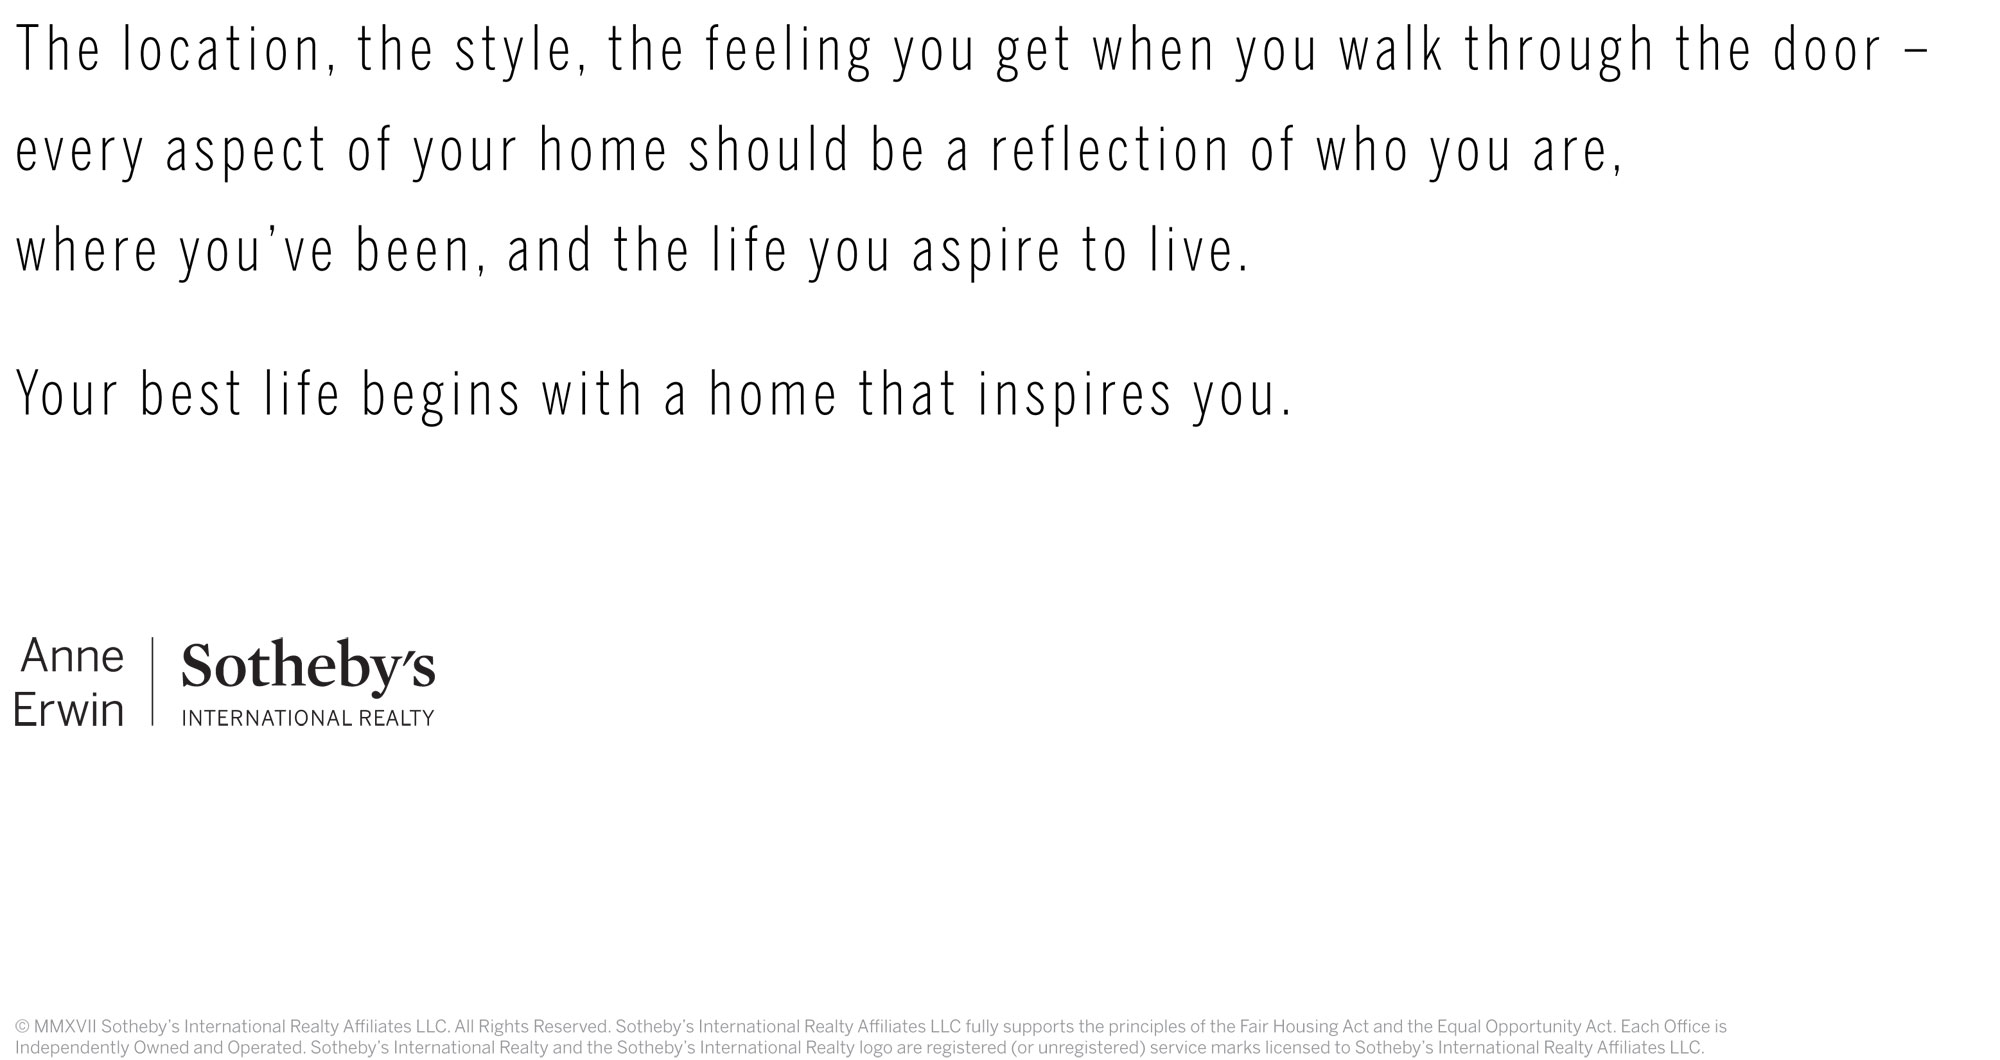 the location, the style, the feeling you get when you walk through the door, every aspect of your home should be a reflection of who you are, where you've been, and the life you aspire to love. your best life begins with a home that inspires you.